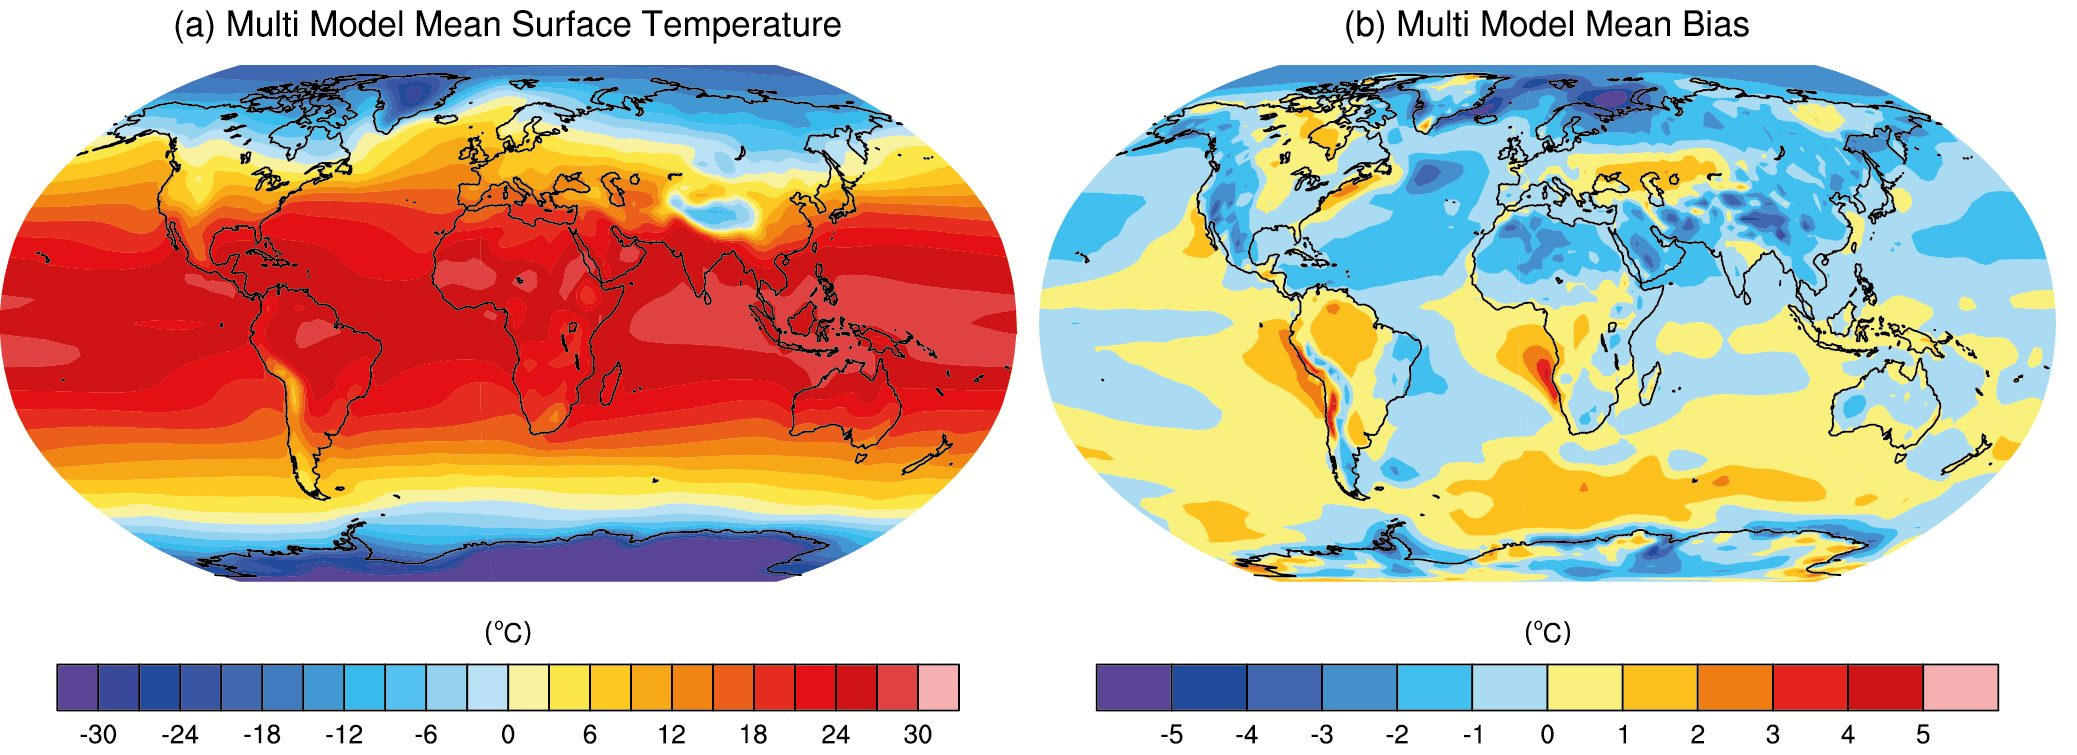 Annual mean surface air temperature distribution from 1980-2005 as simulated by climate models (a) and their bias (b). The bias b = Tm - To is the difference between the model simulated temperature Tm and that estimated from observations To. From ipcc.ch.